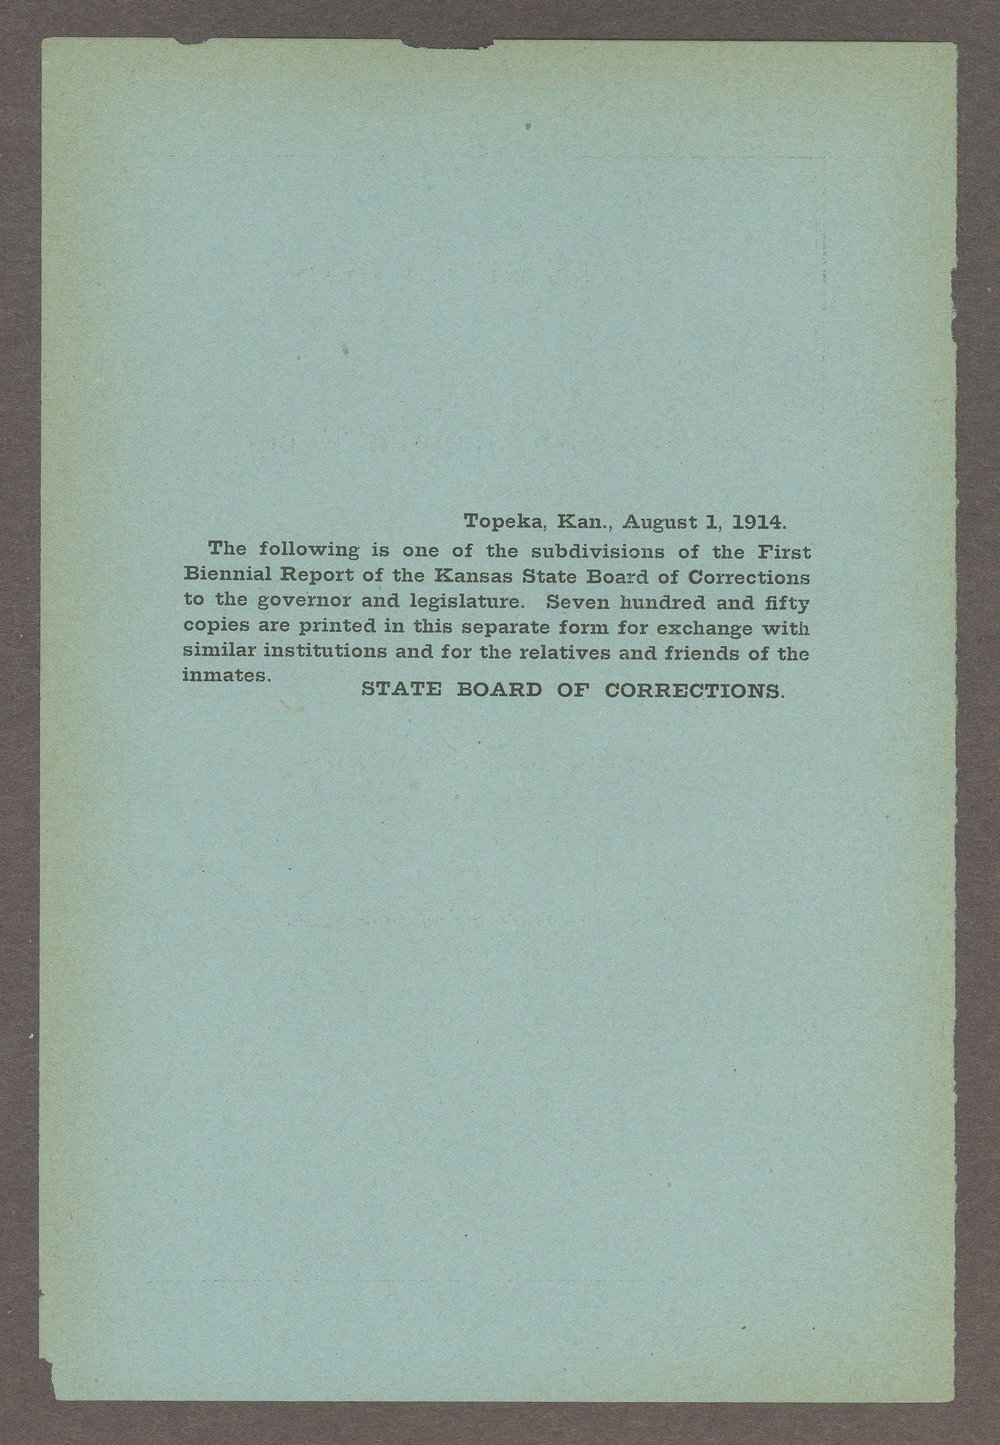 Biennial report of the Boys Industrial School, 1914 - Inside Front Cover